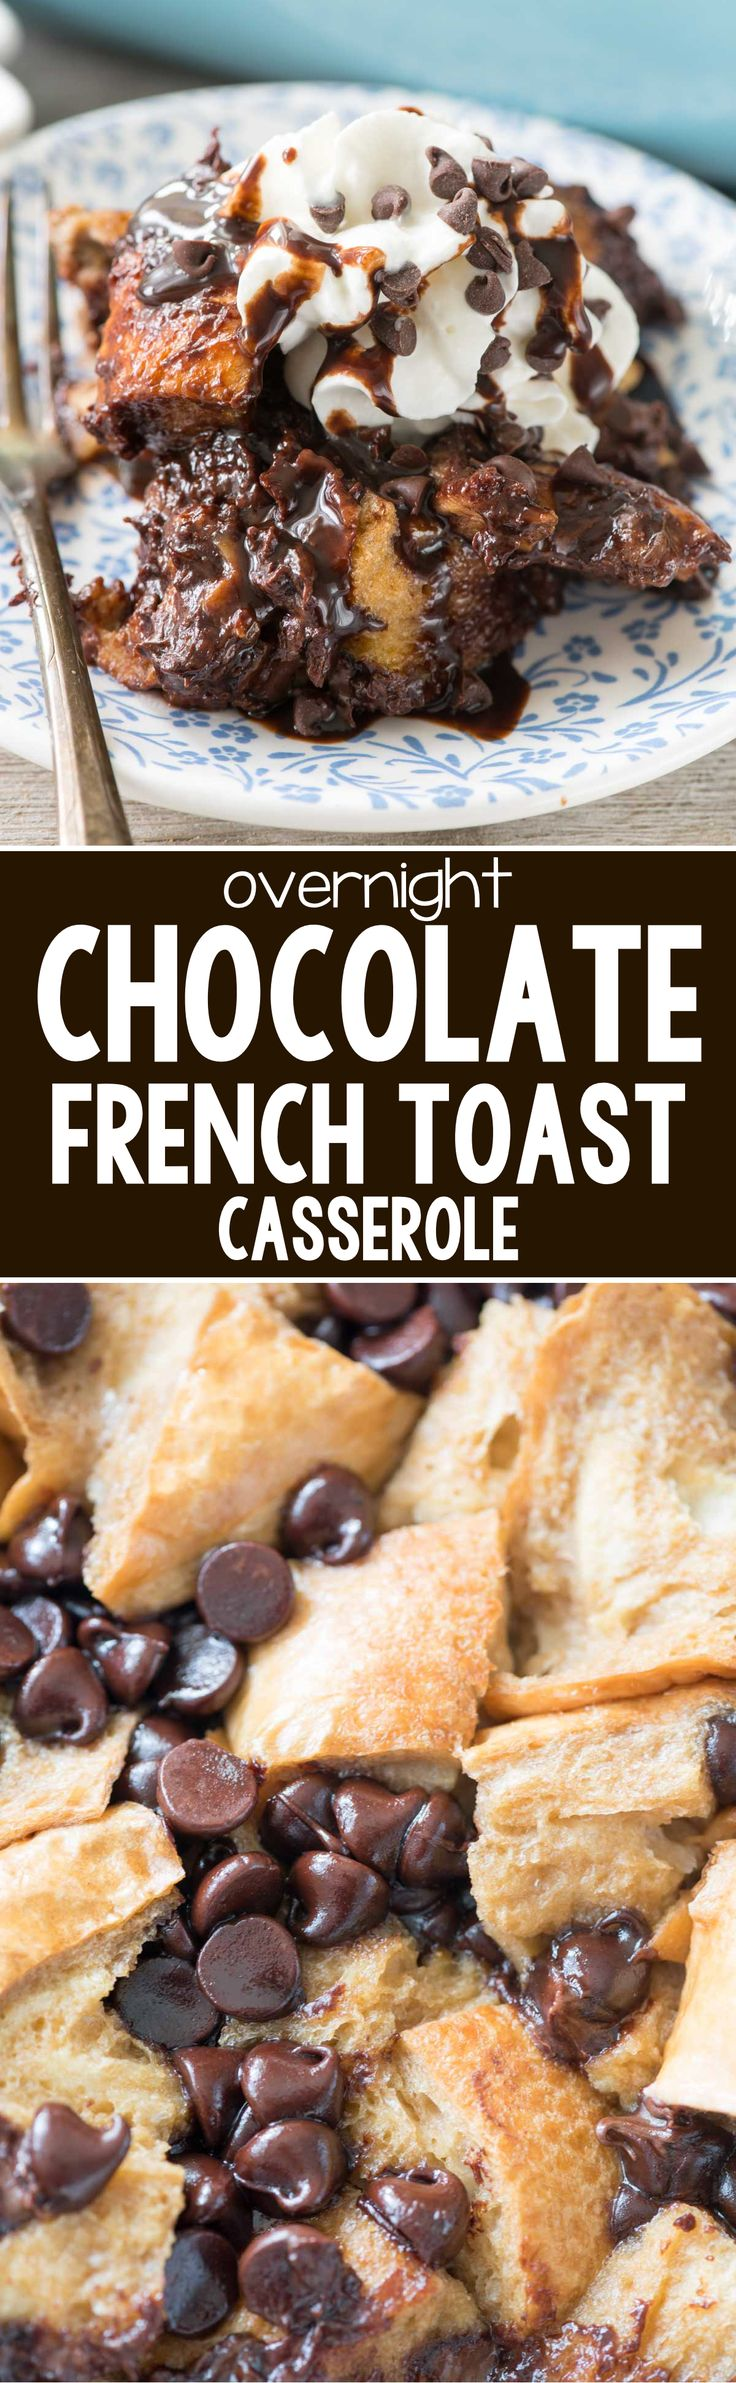 Chocolate French Toast Casserole - this easy overnight french toast recipe is full of chocolate from the milk to the chocolate chips! It's the perfect indulgent brunch recipe!